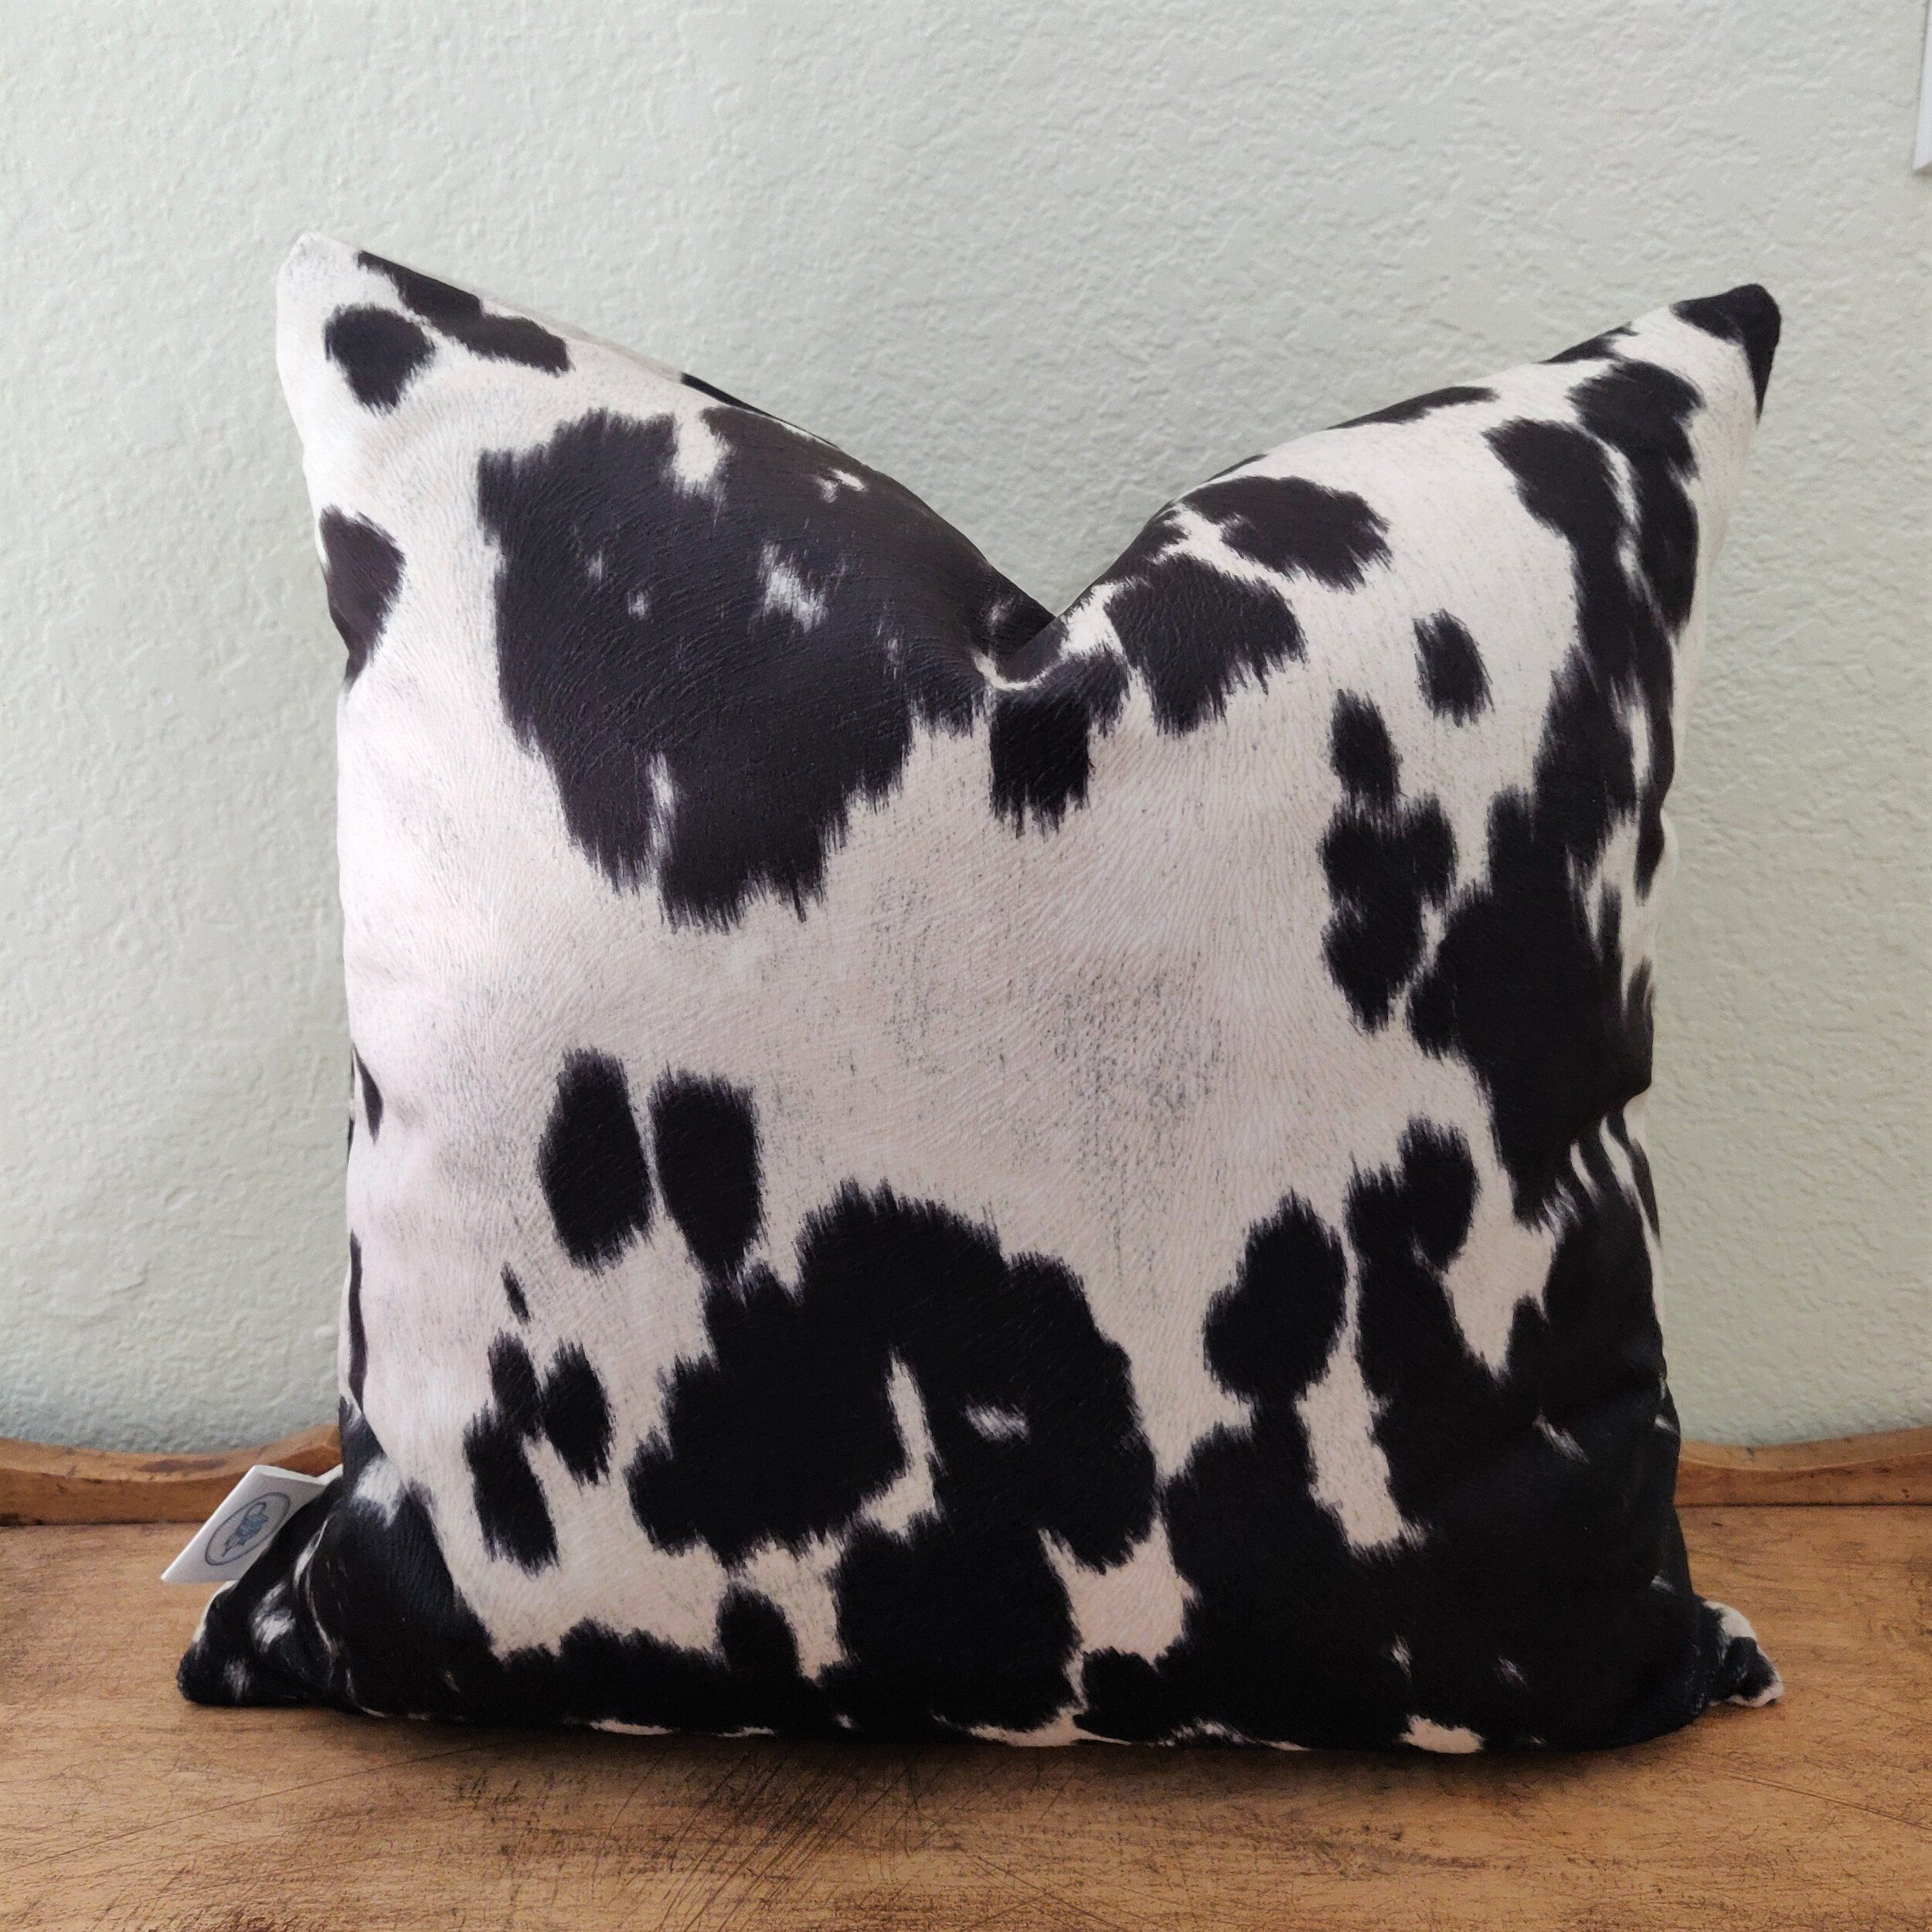 Cow Pillow Cases CafePress